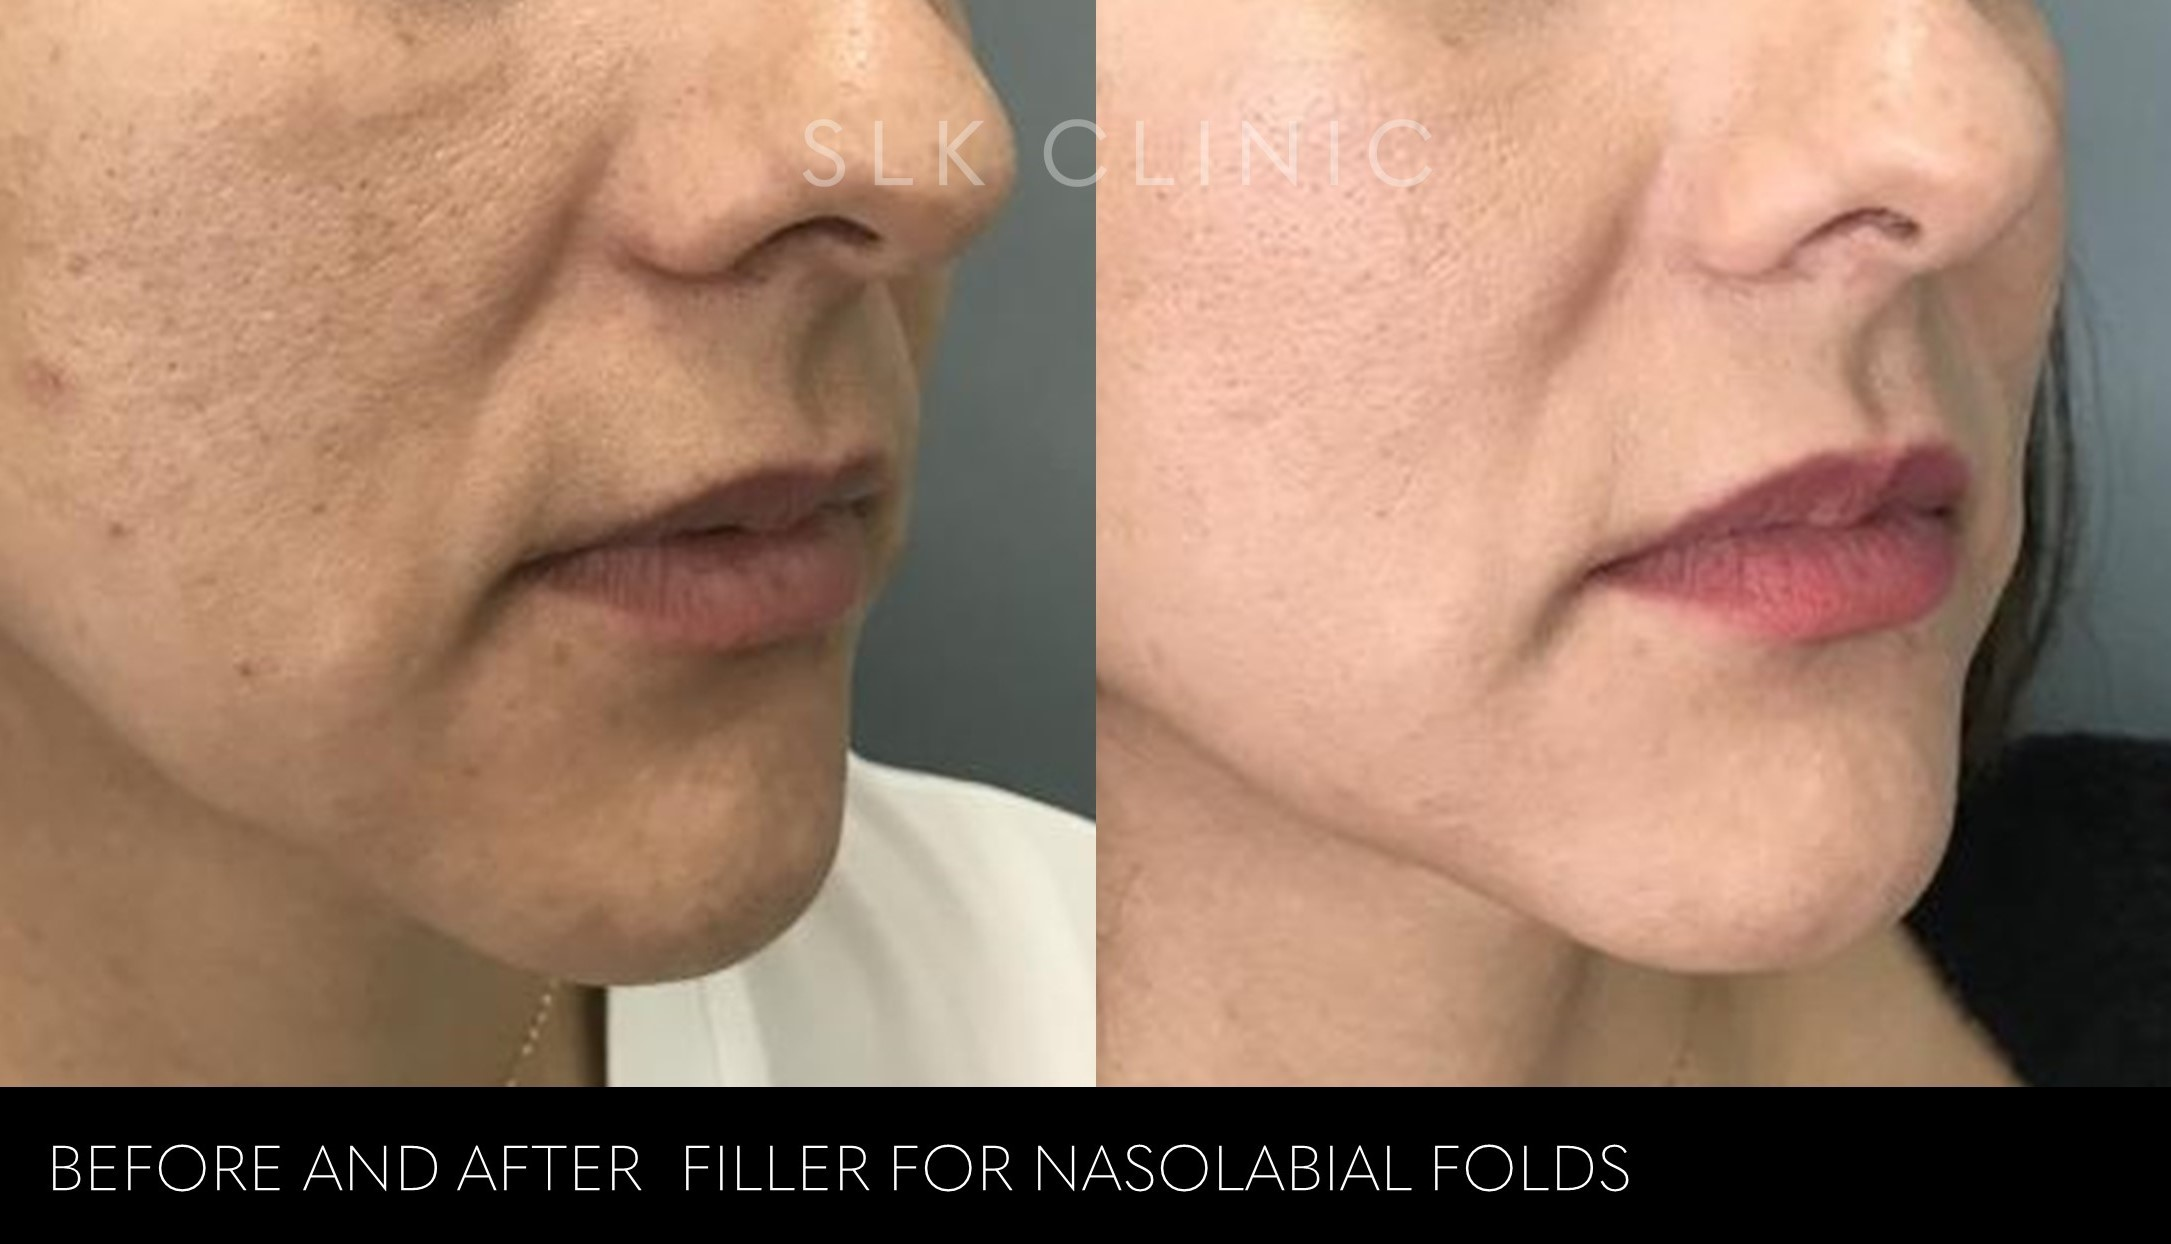 woman before and after nasolabial folds filler nashville - 2 syringes of vollure